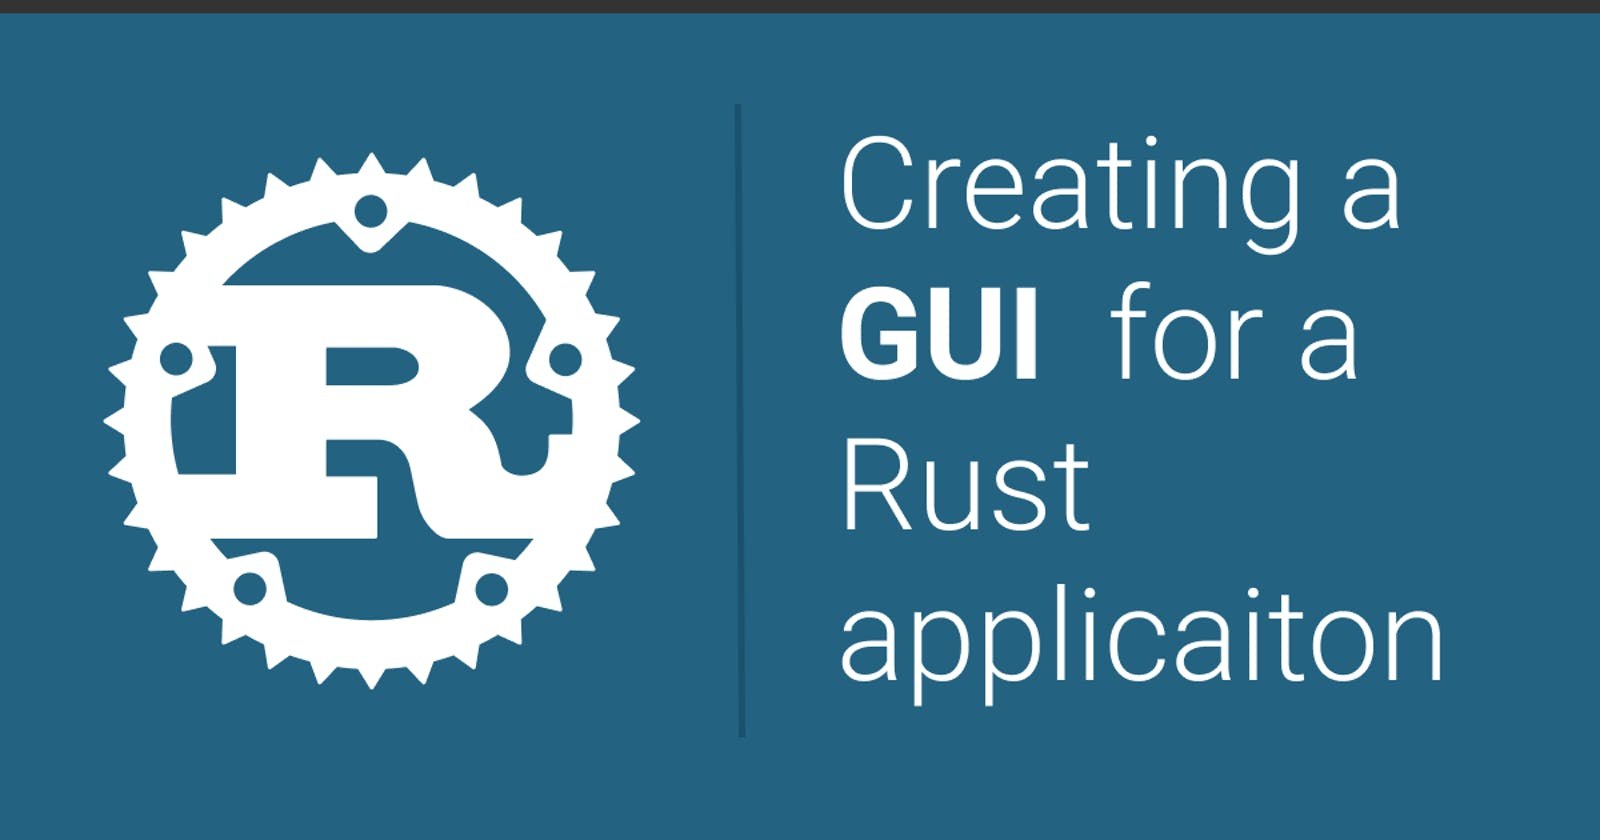 Creating a GUI for a Rust application